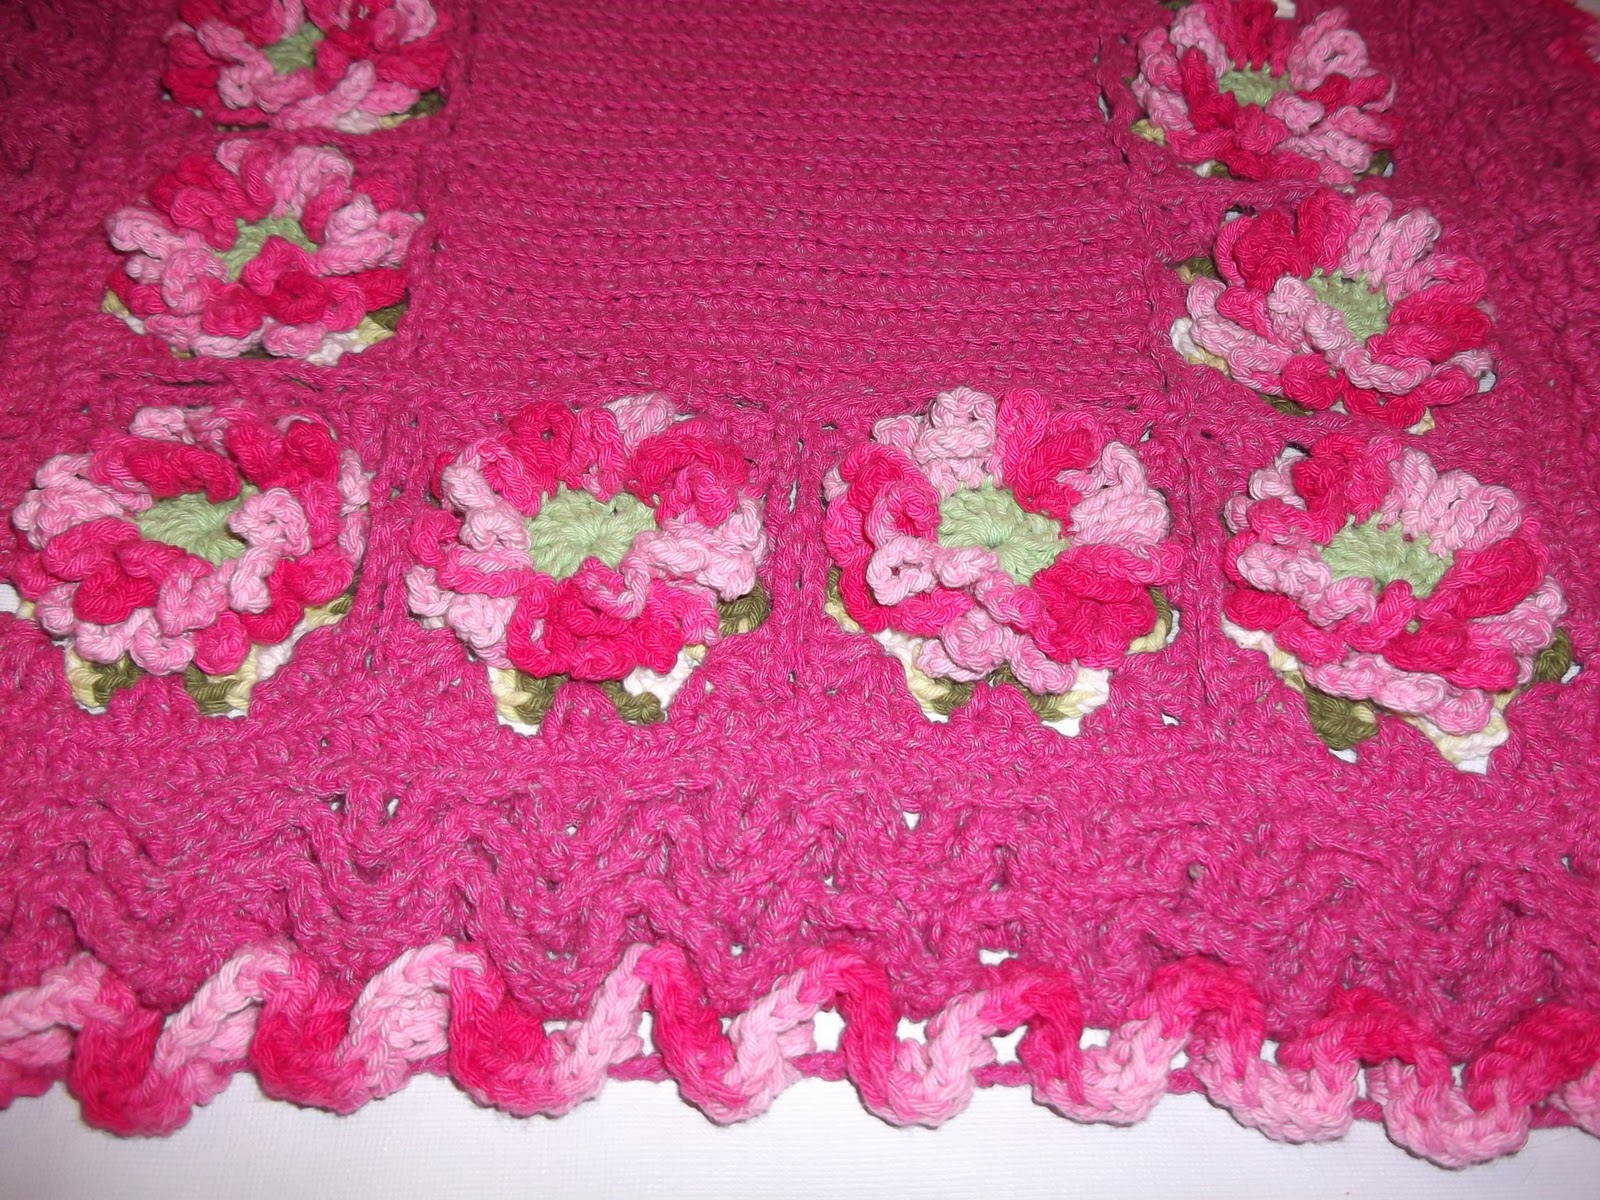 Elis camilo croche tapete pink com flores for Tapete pink